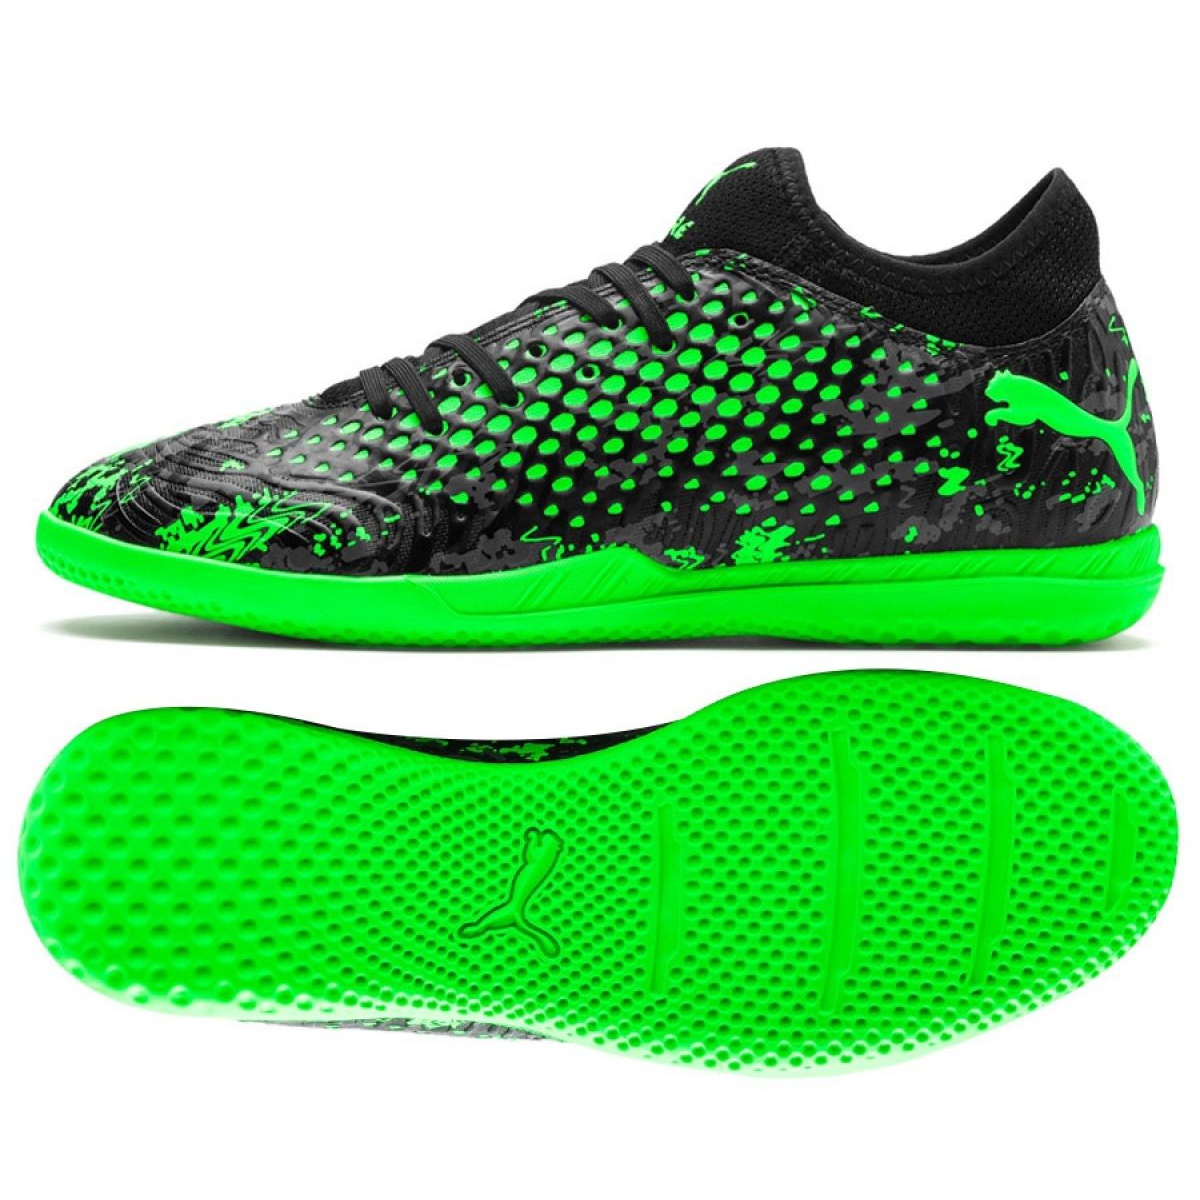 Details about Indoor shoes Puma Future 19.4 It M 105549 03